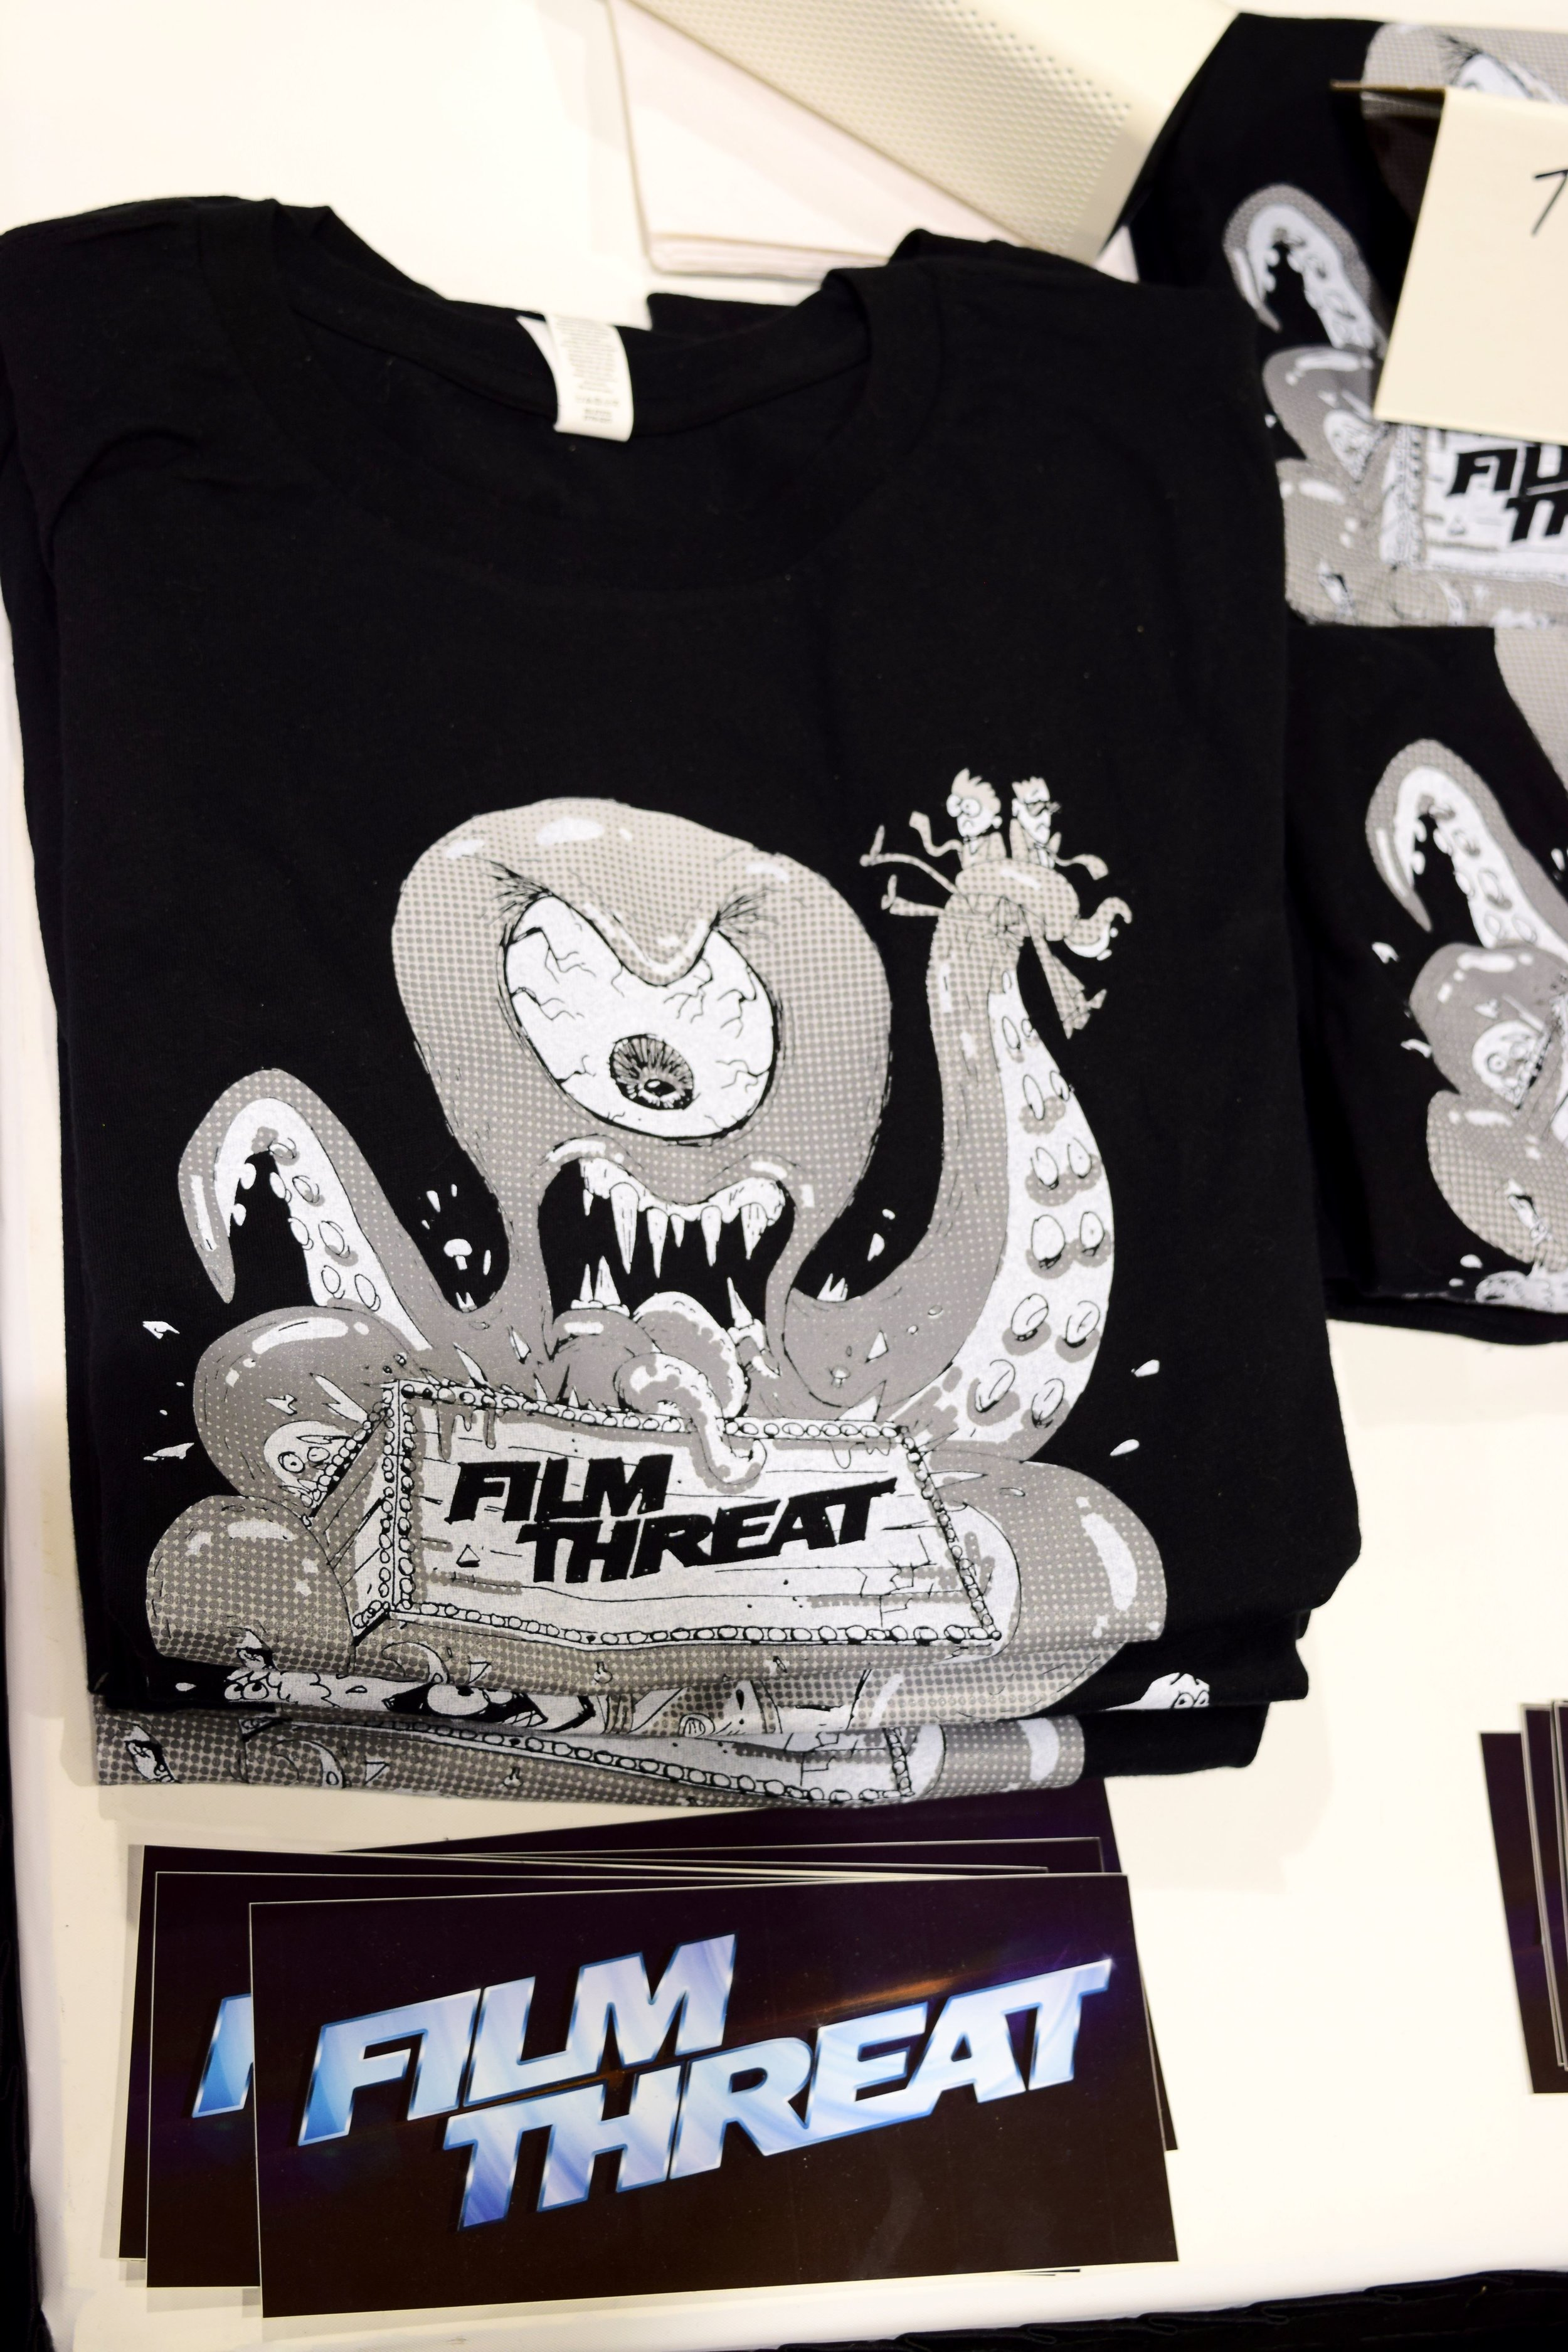 Film Threat t-shirts and stickers at Phoenix Comic Con 2017.